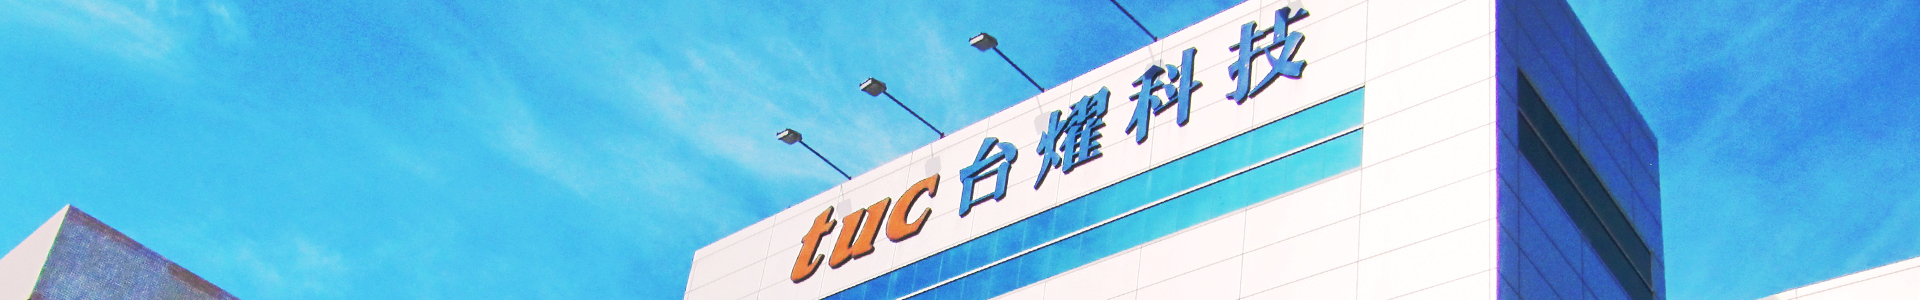 About TUC